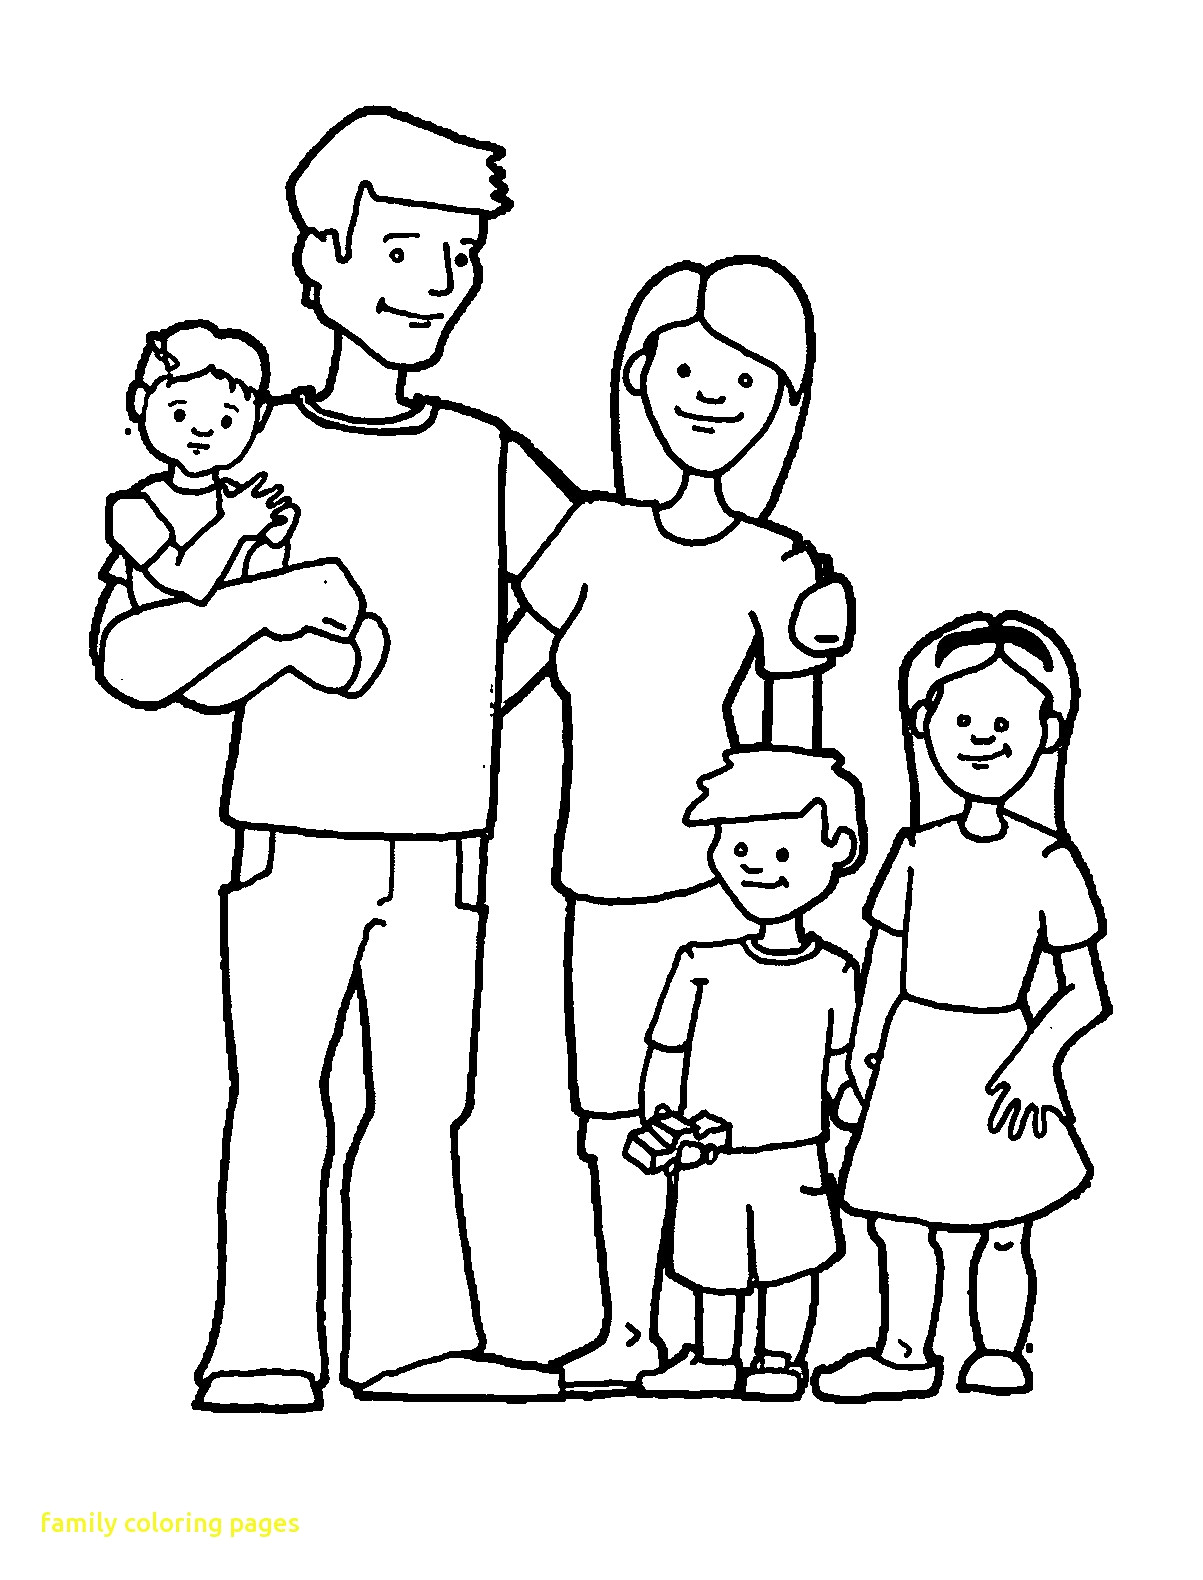 cartoon family coloring pages cartoon family coloring pages at getcoloringscom free family pages coloring cartoon